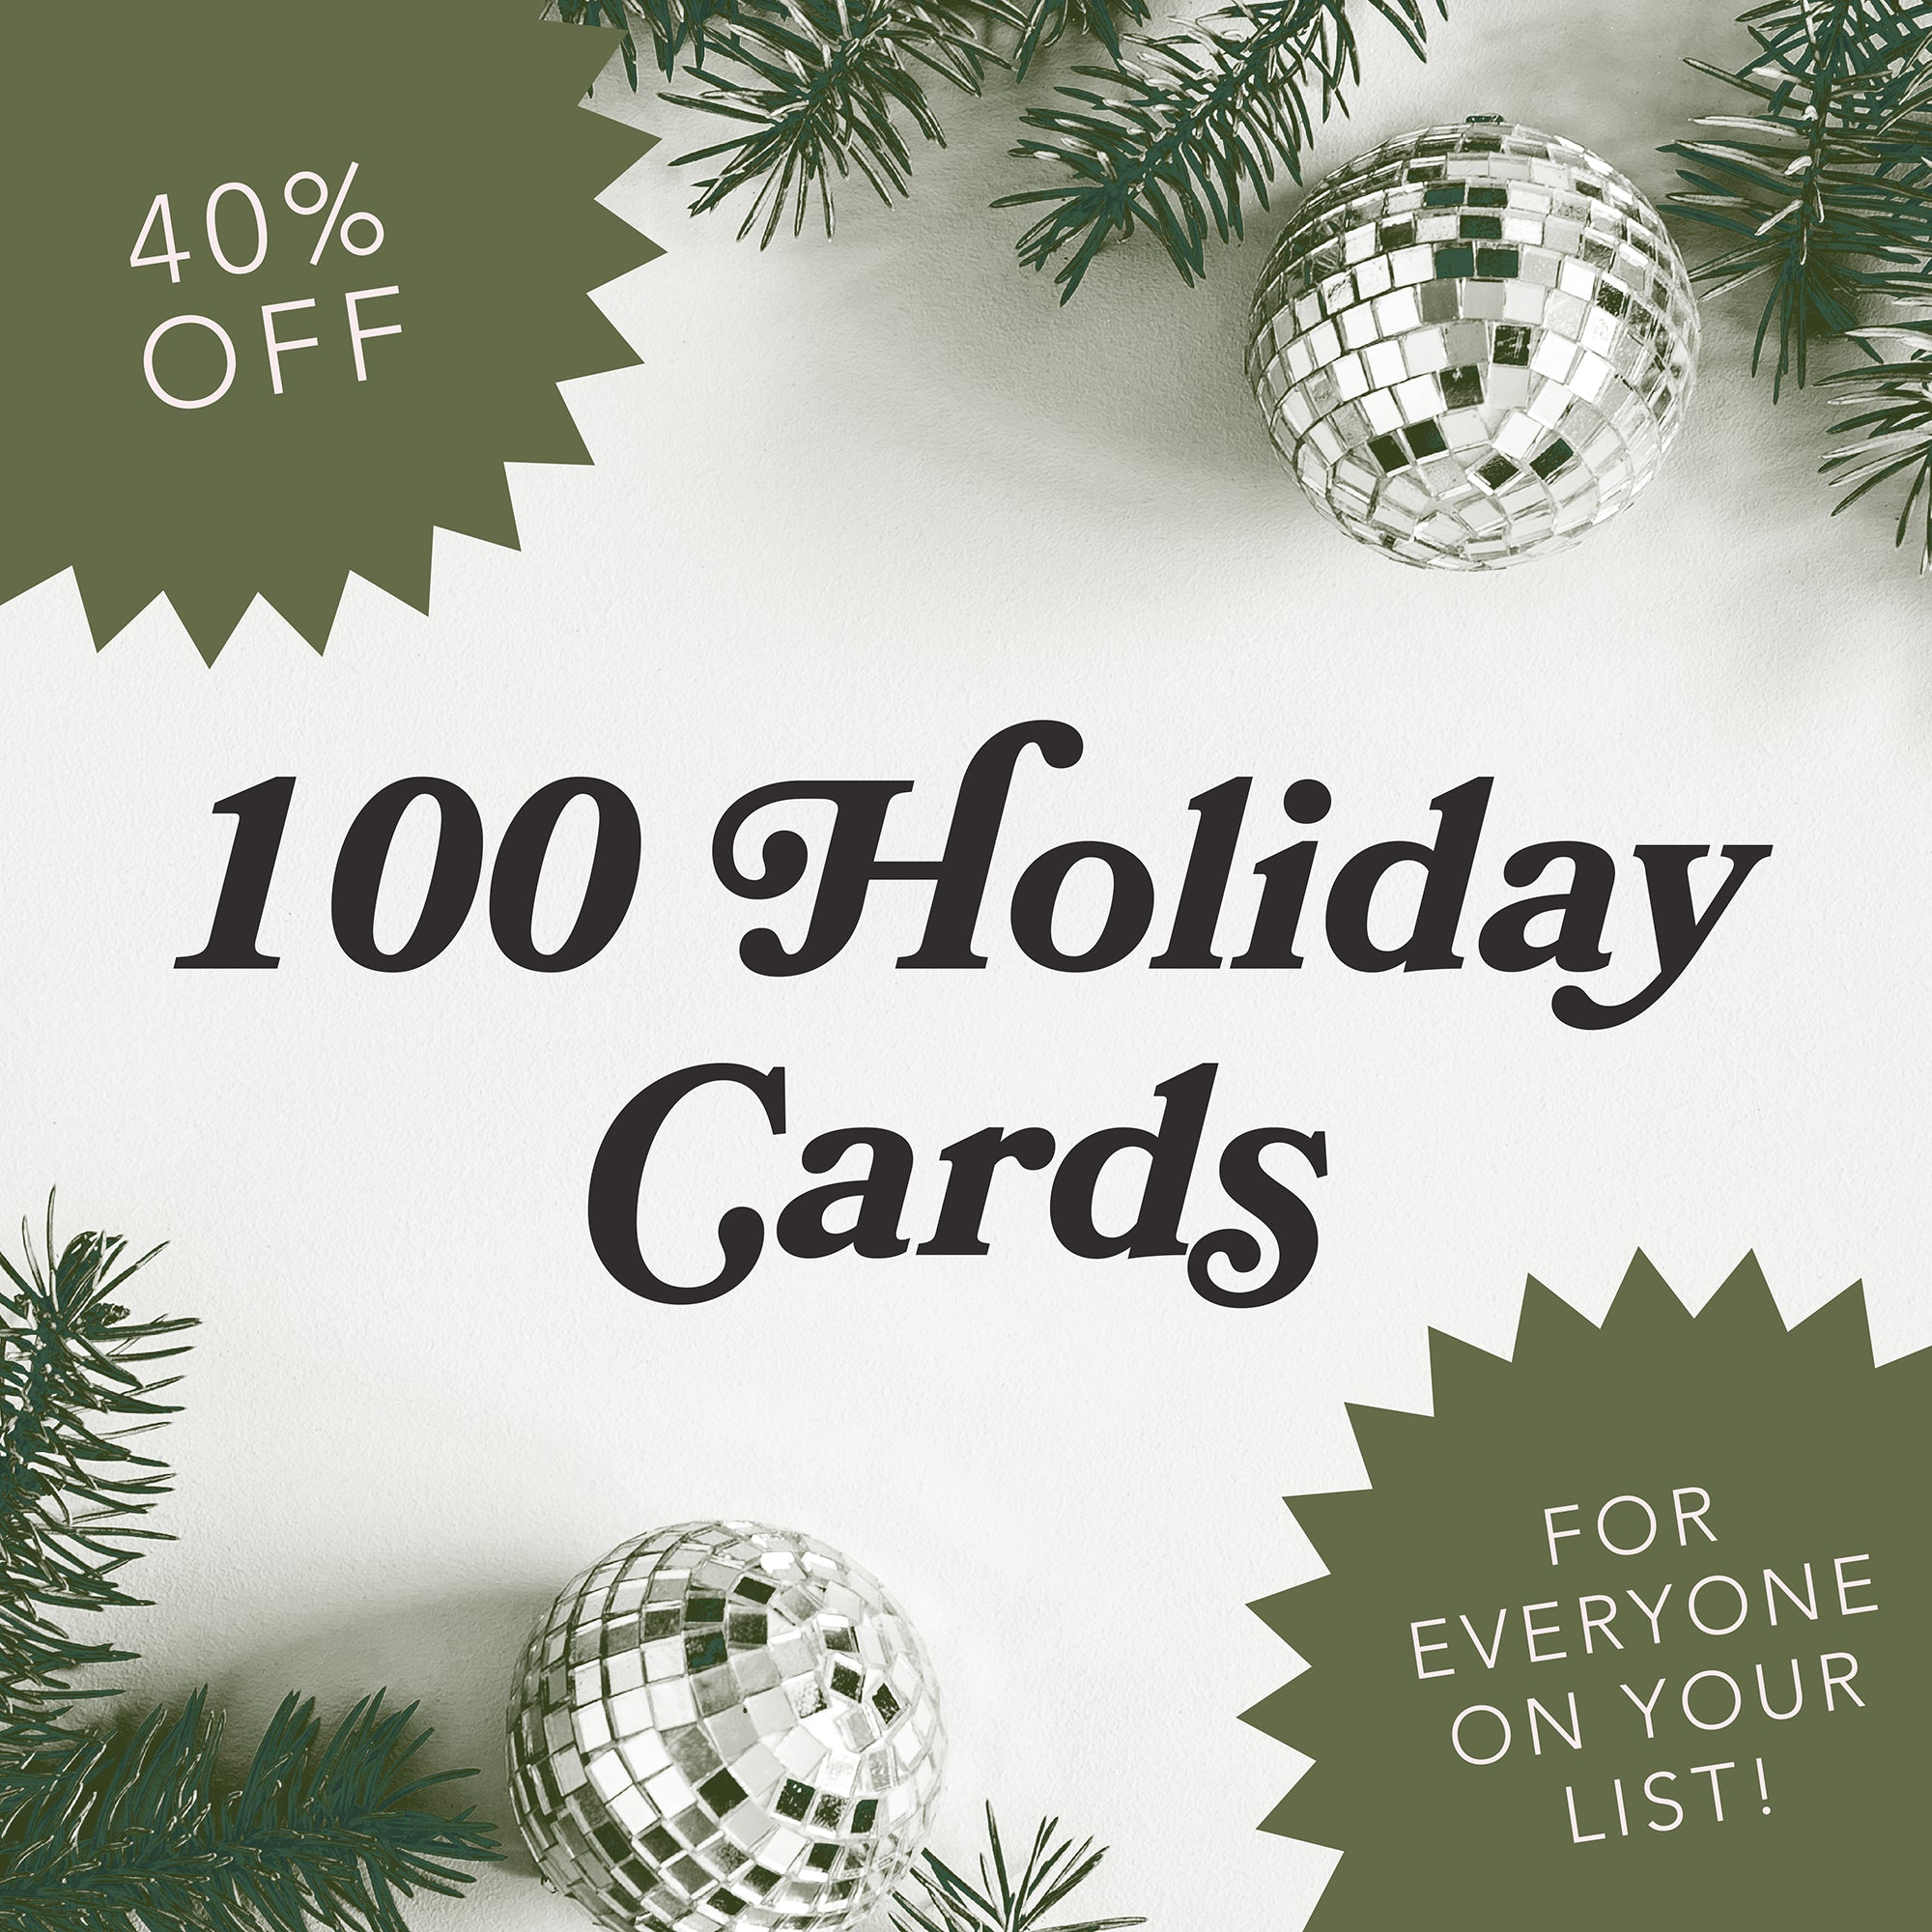 100 Holiday Cards